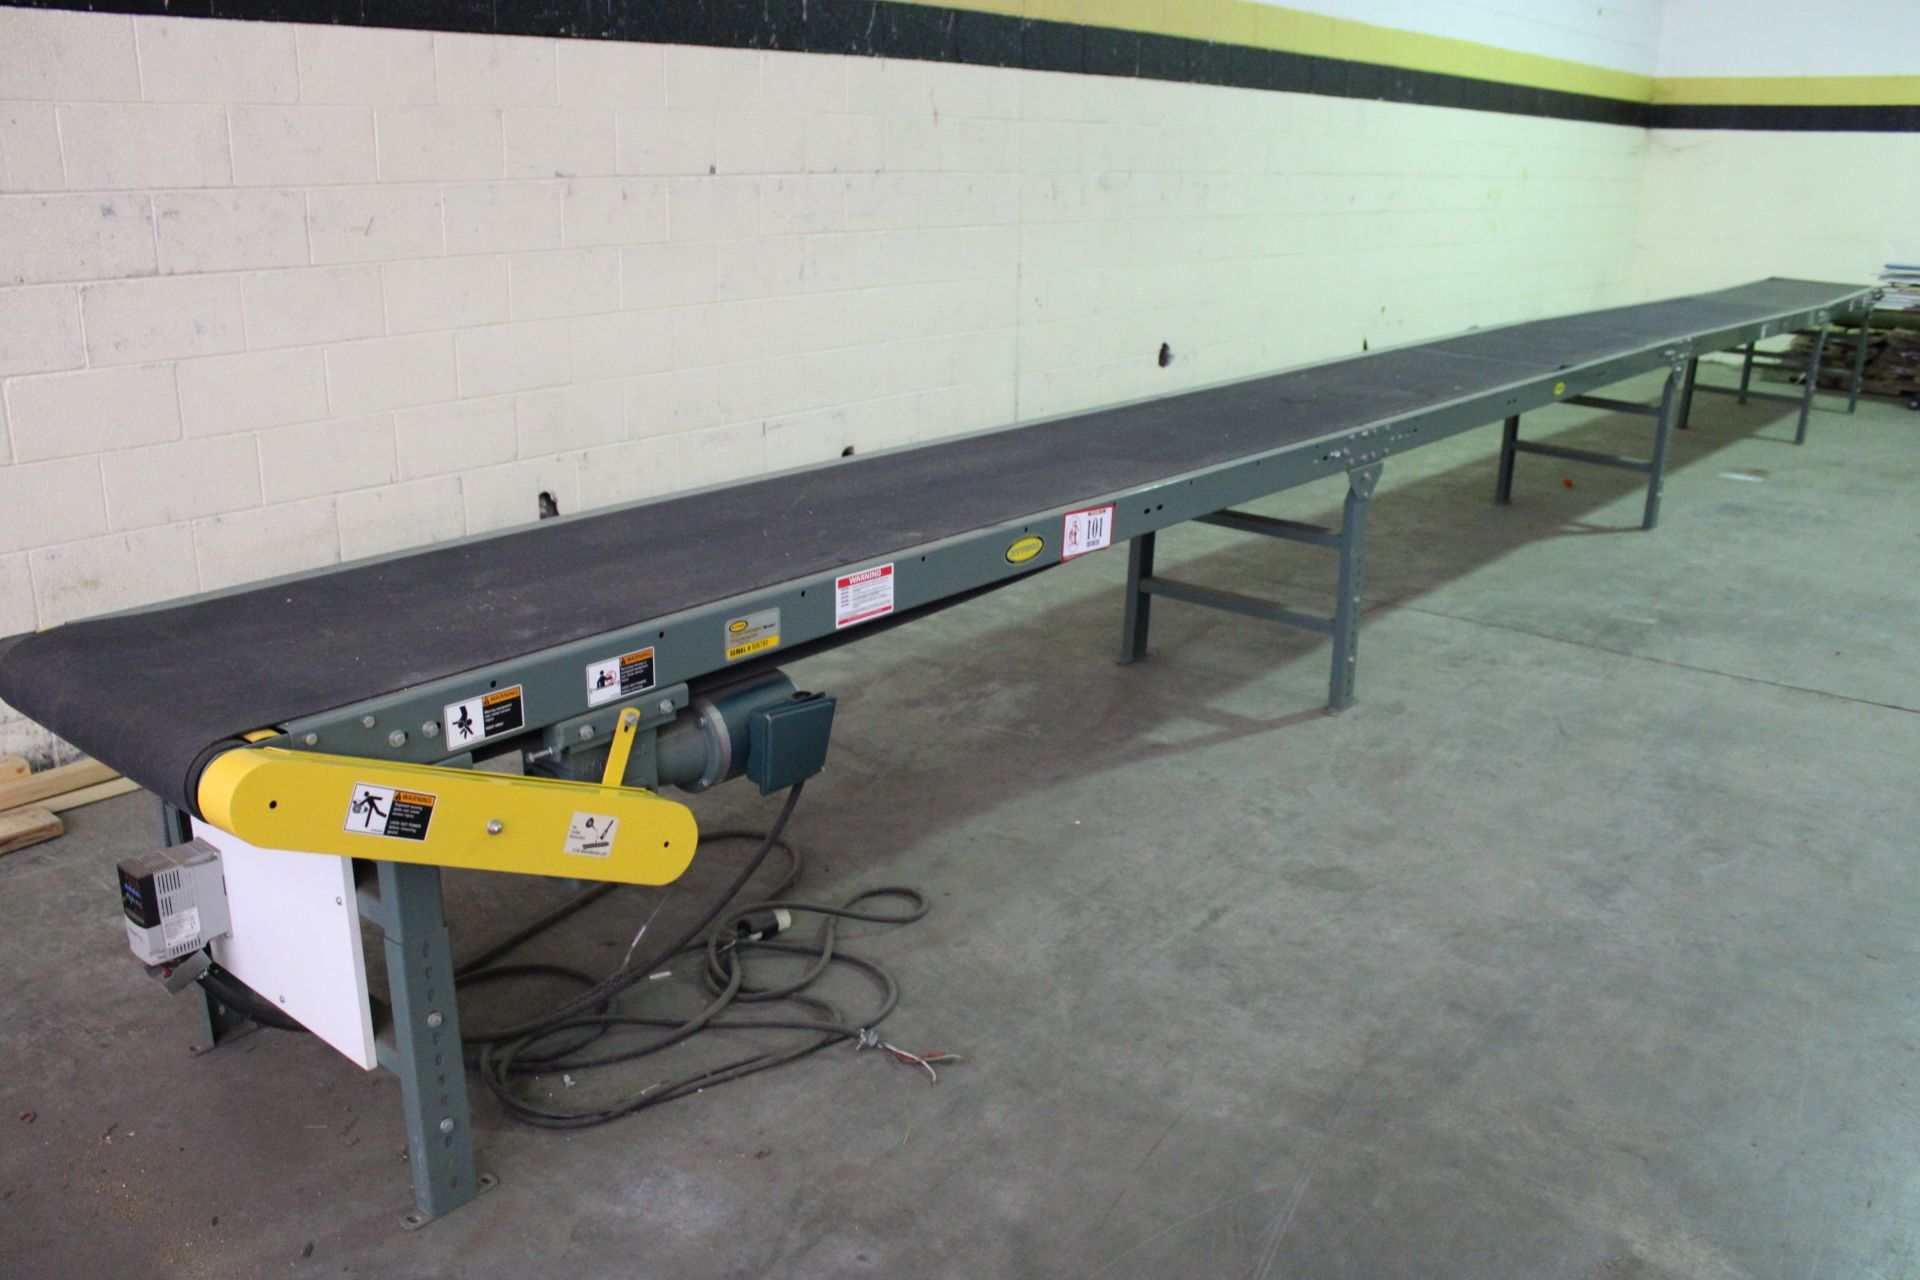 Hytrol Model TA 37ft Power Conveyor, 230 v 3 Phase, New, Used less than 100 hours, Variable speed to